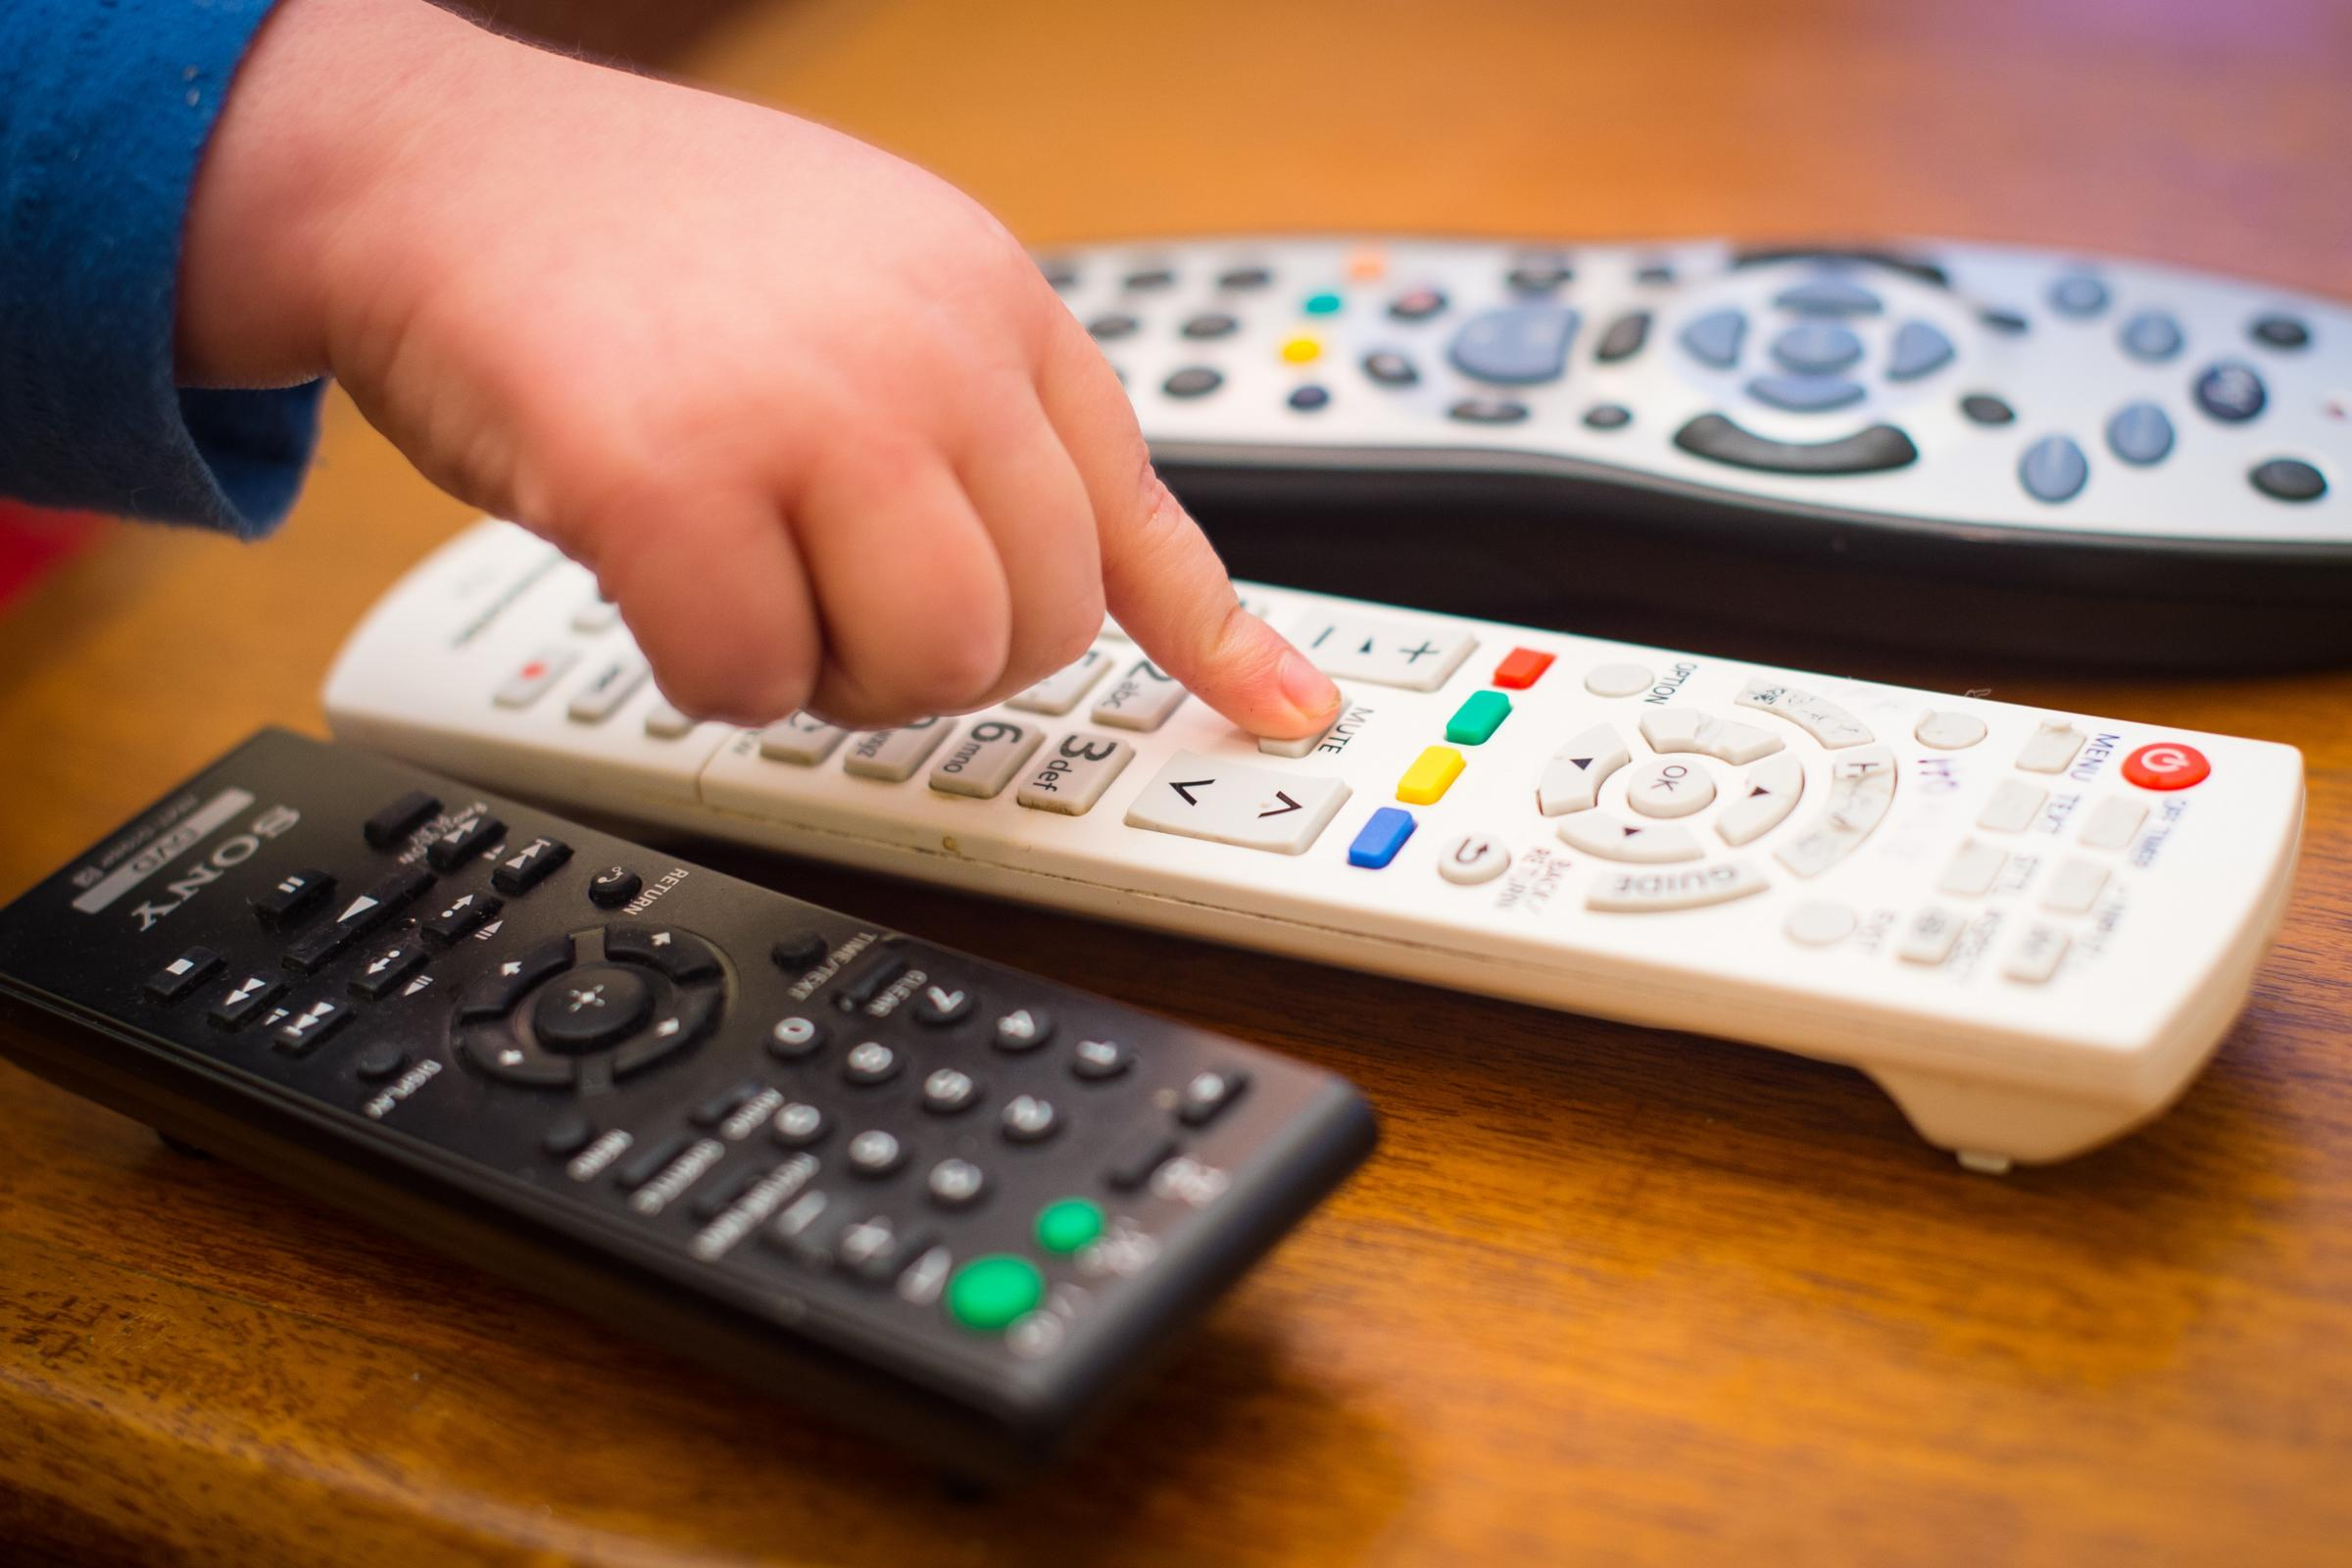 Remote controls, as Netflix is to provide age ratings for content